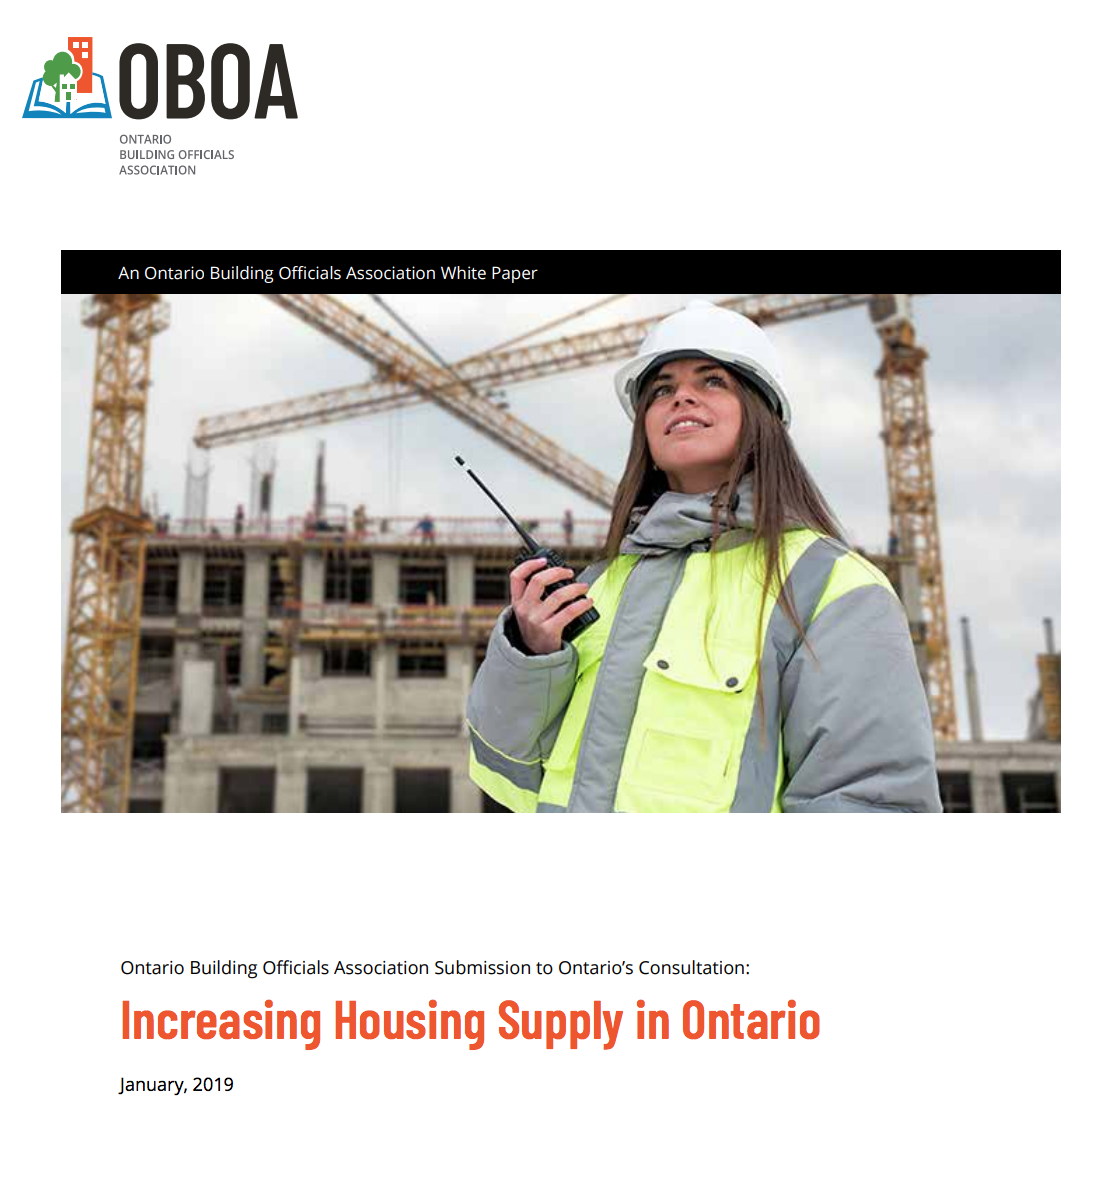 OBOA White Paper: Increasing Housing Supply in Ontario